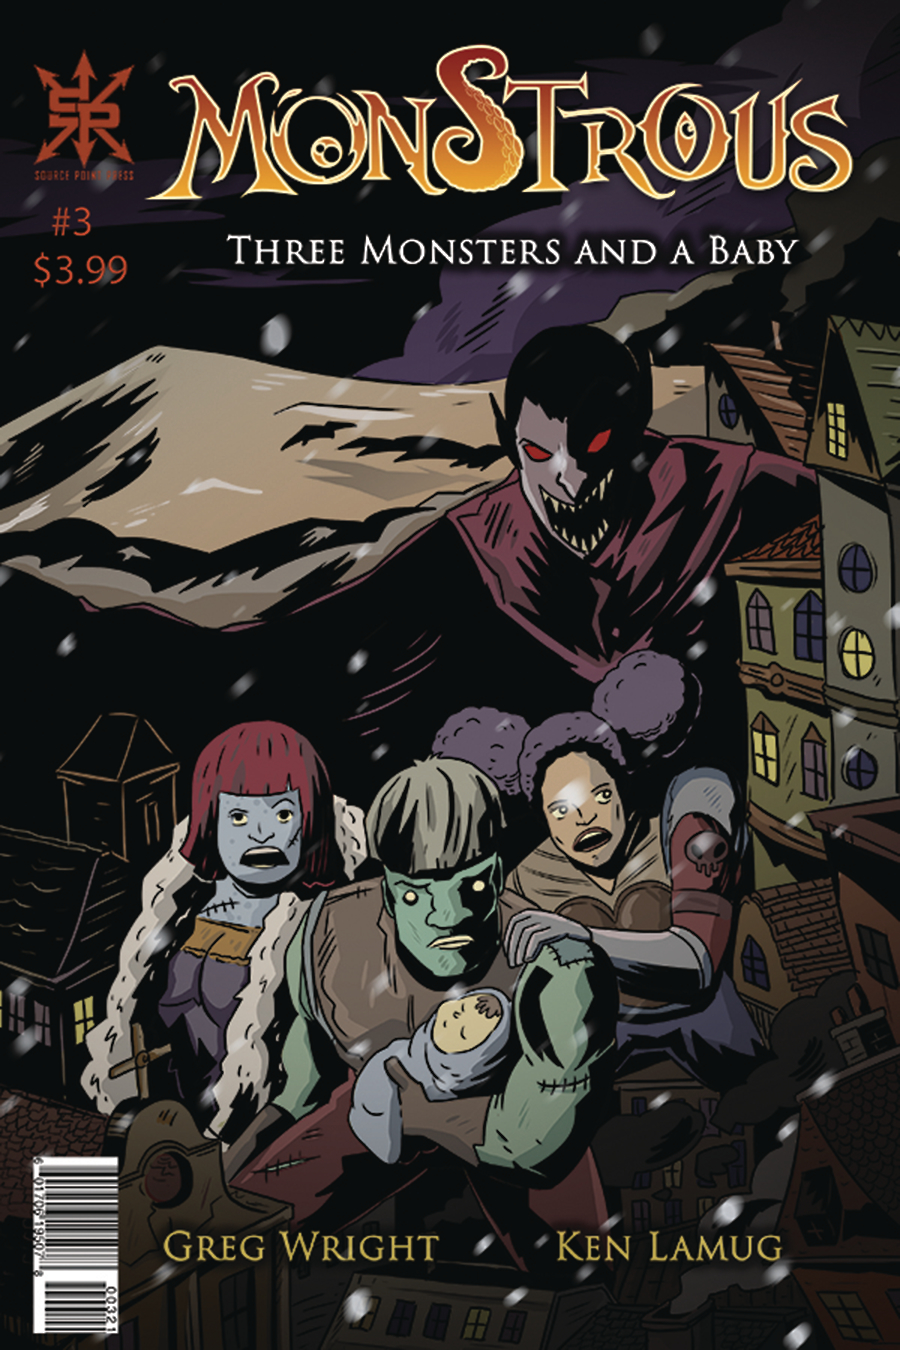 MONSTROUS #3 (OF 4)